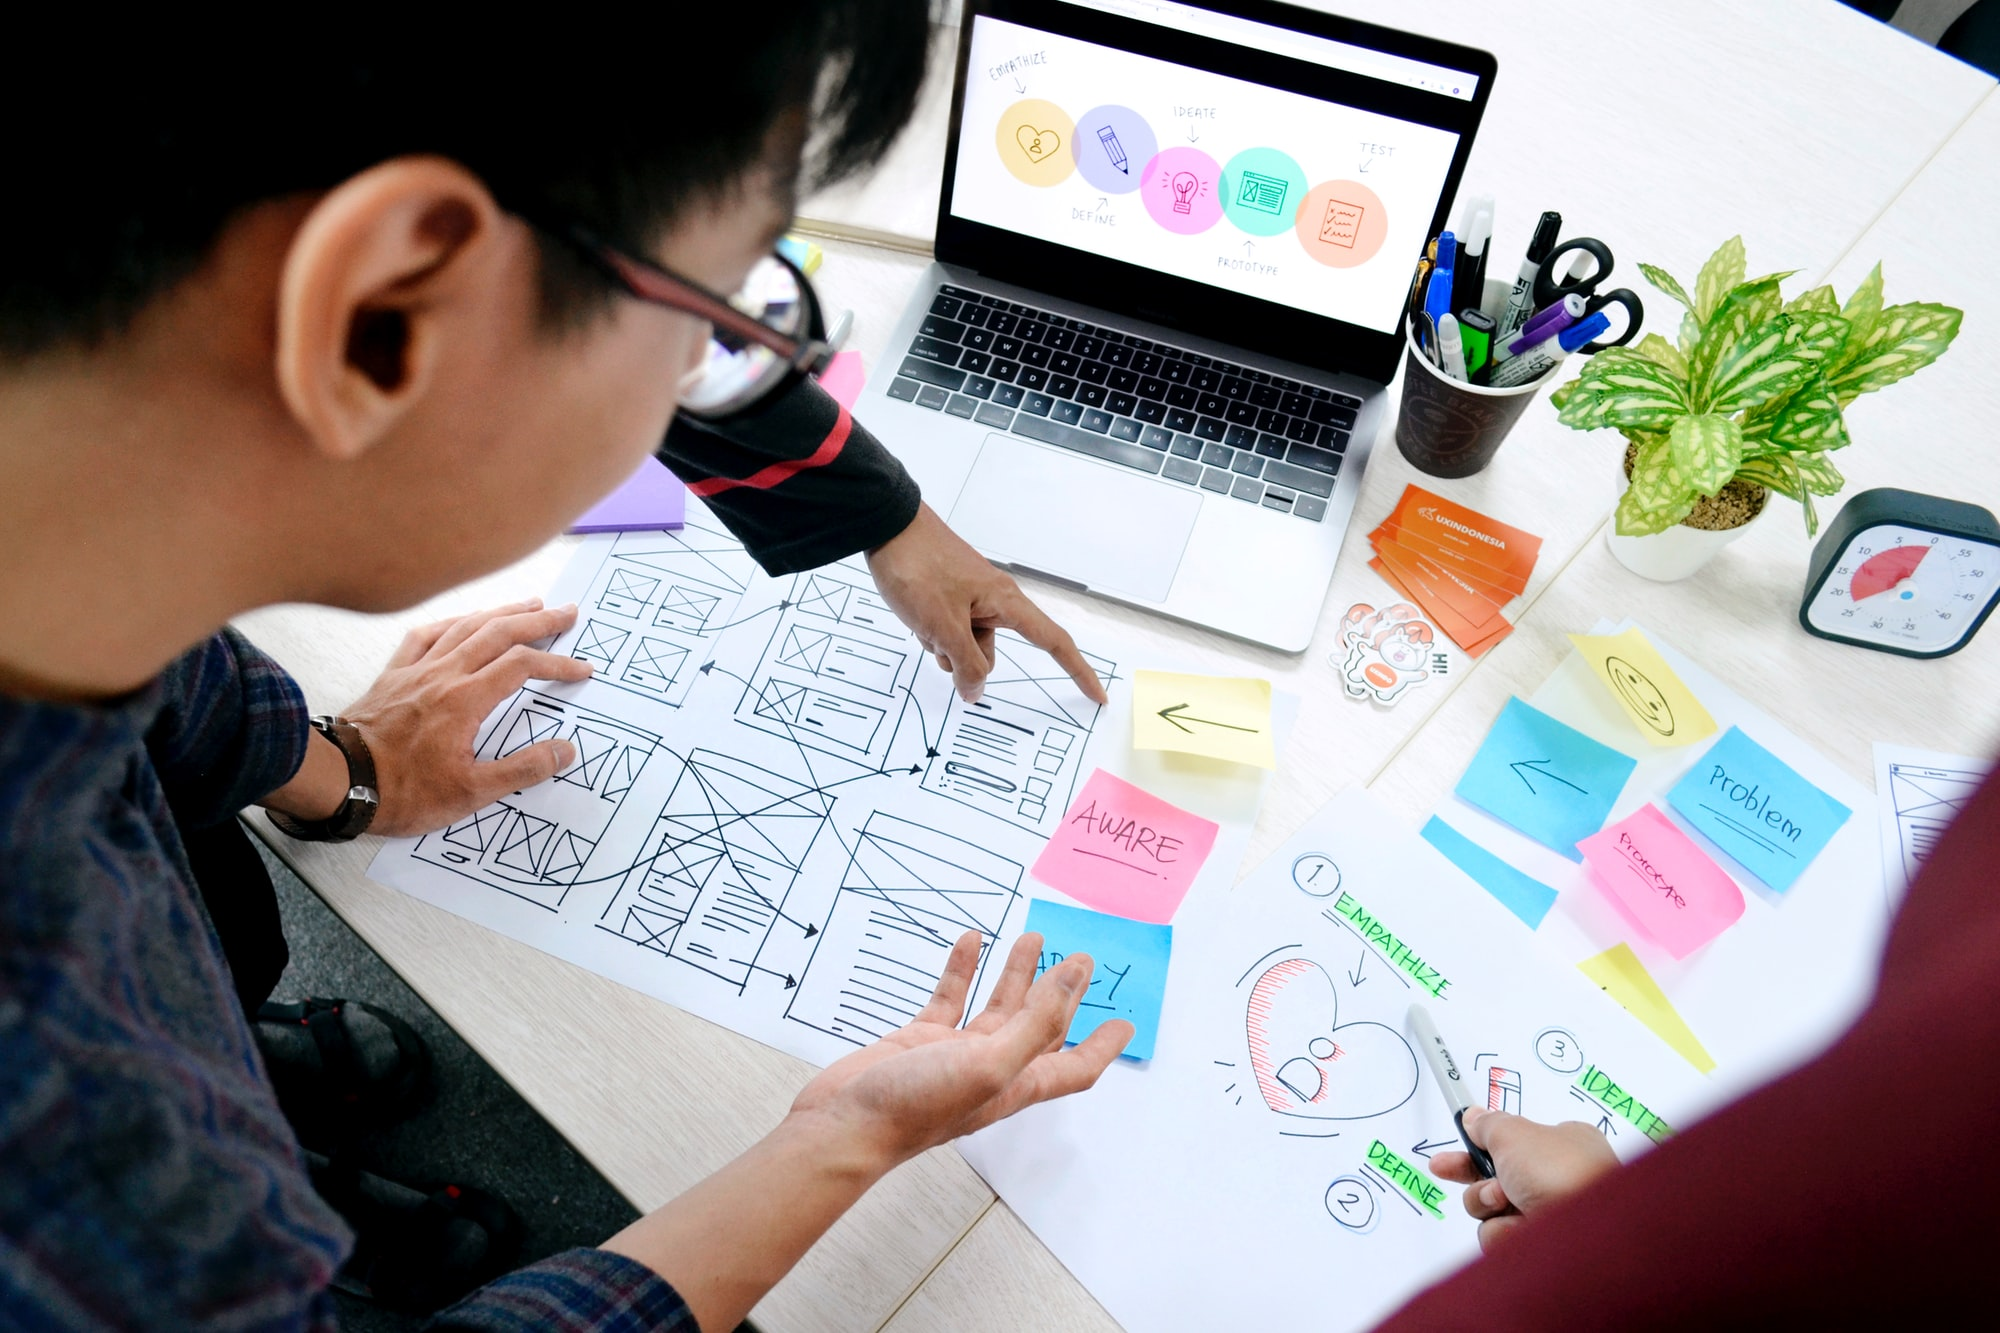 Design thinking is a human-centered approach to innovation that draws from the designer's toolkit to integrate the needs of people, the possibilities of technology, and the requirements for business success. Design thinking has a human-centered core. It encourages organizations to focus on the people they're creating for, which leads to better products, services, and internal processes.